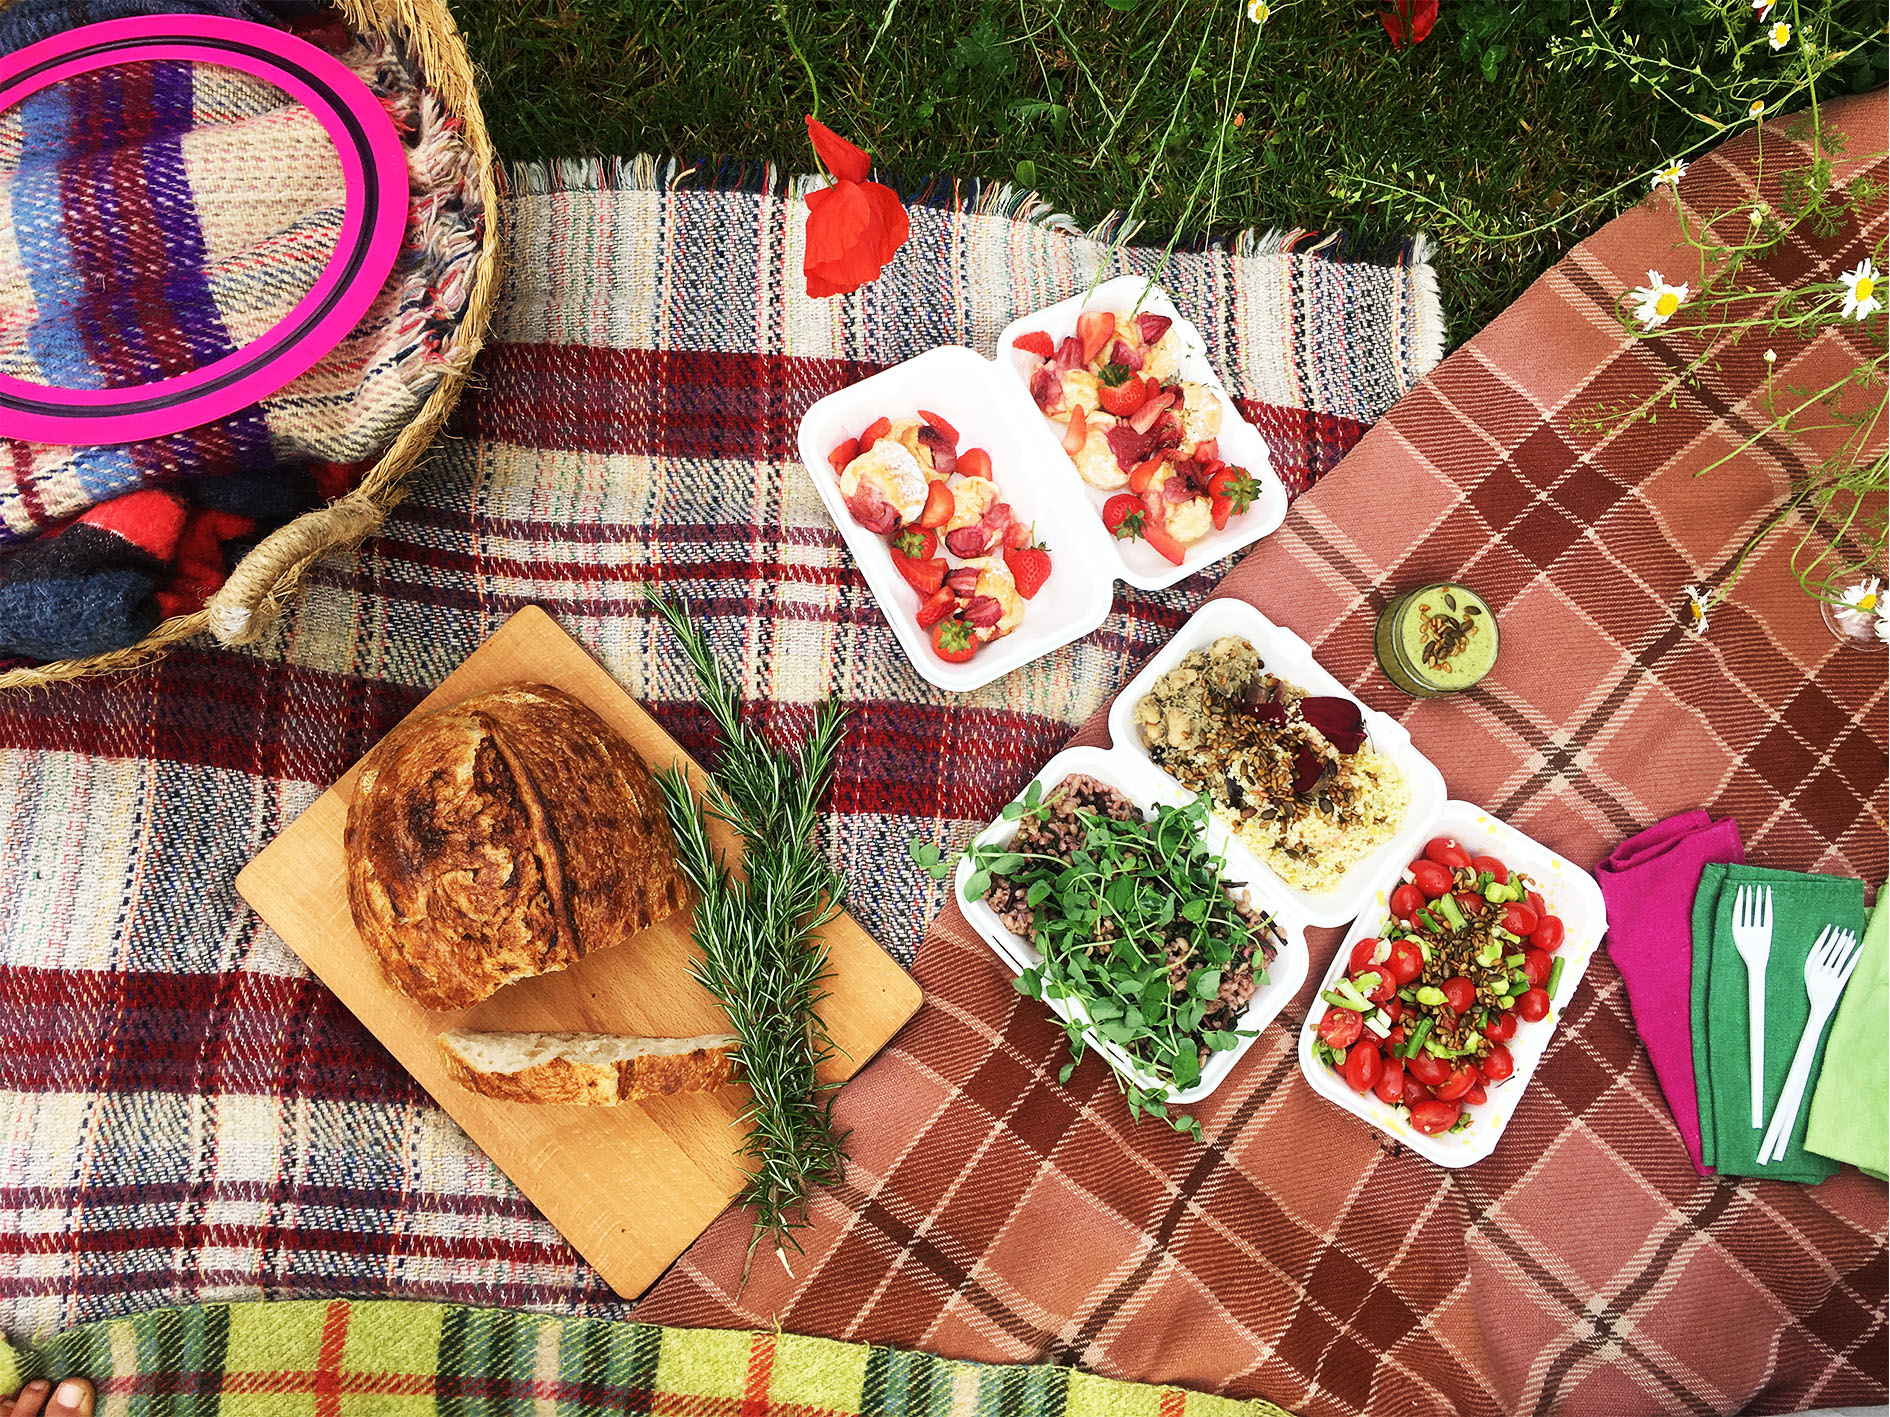 Pea Shoot picnic at Asthall adjusted.jpg